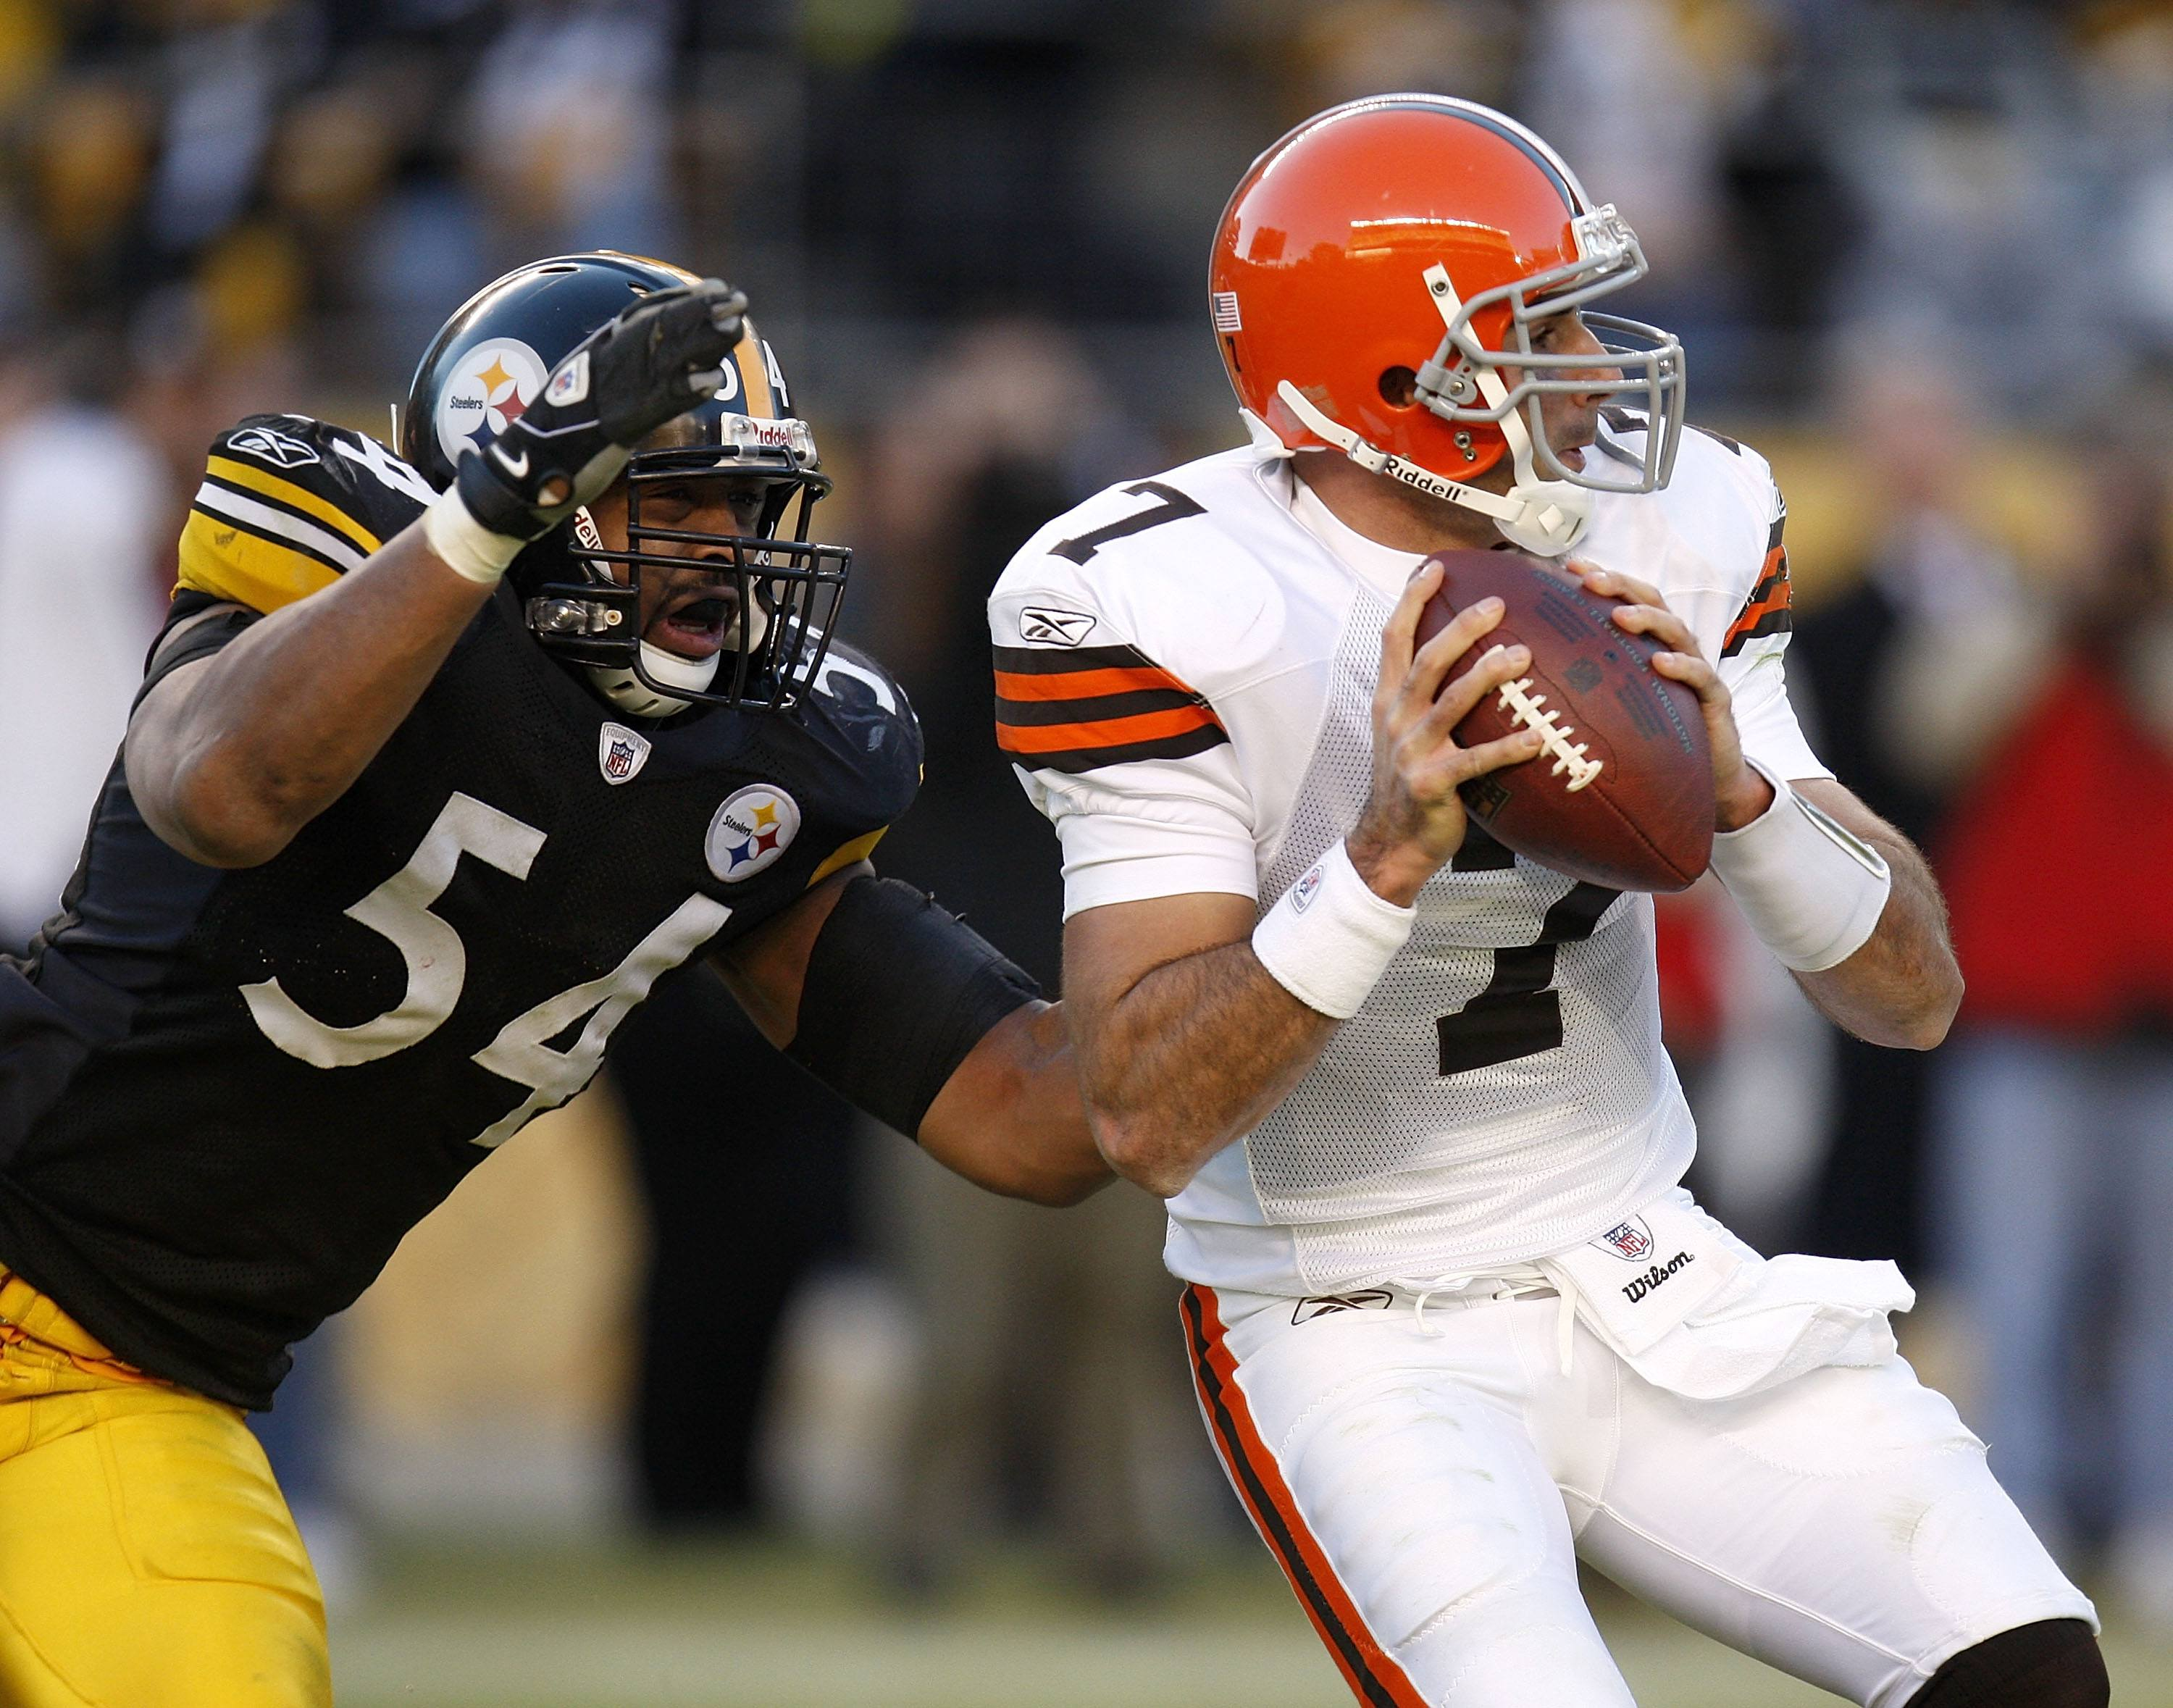 Bruce Gradkowski of the Cleveland Browns gets sacked by Andre Frazier of the Pittsburgh Steelers.